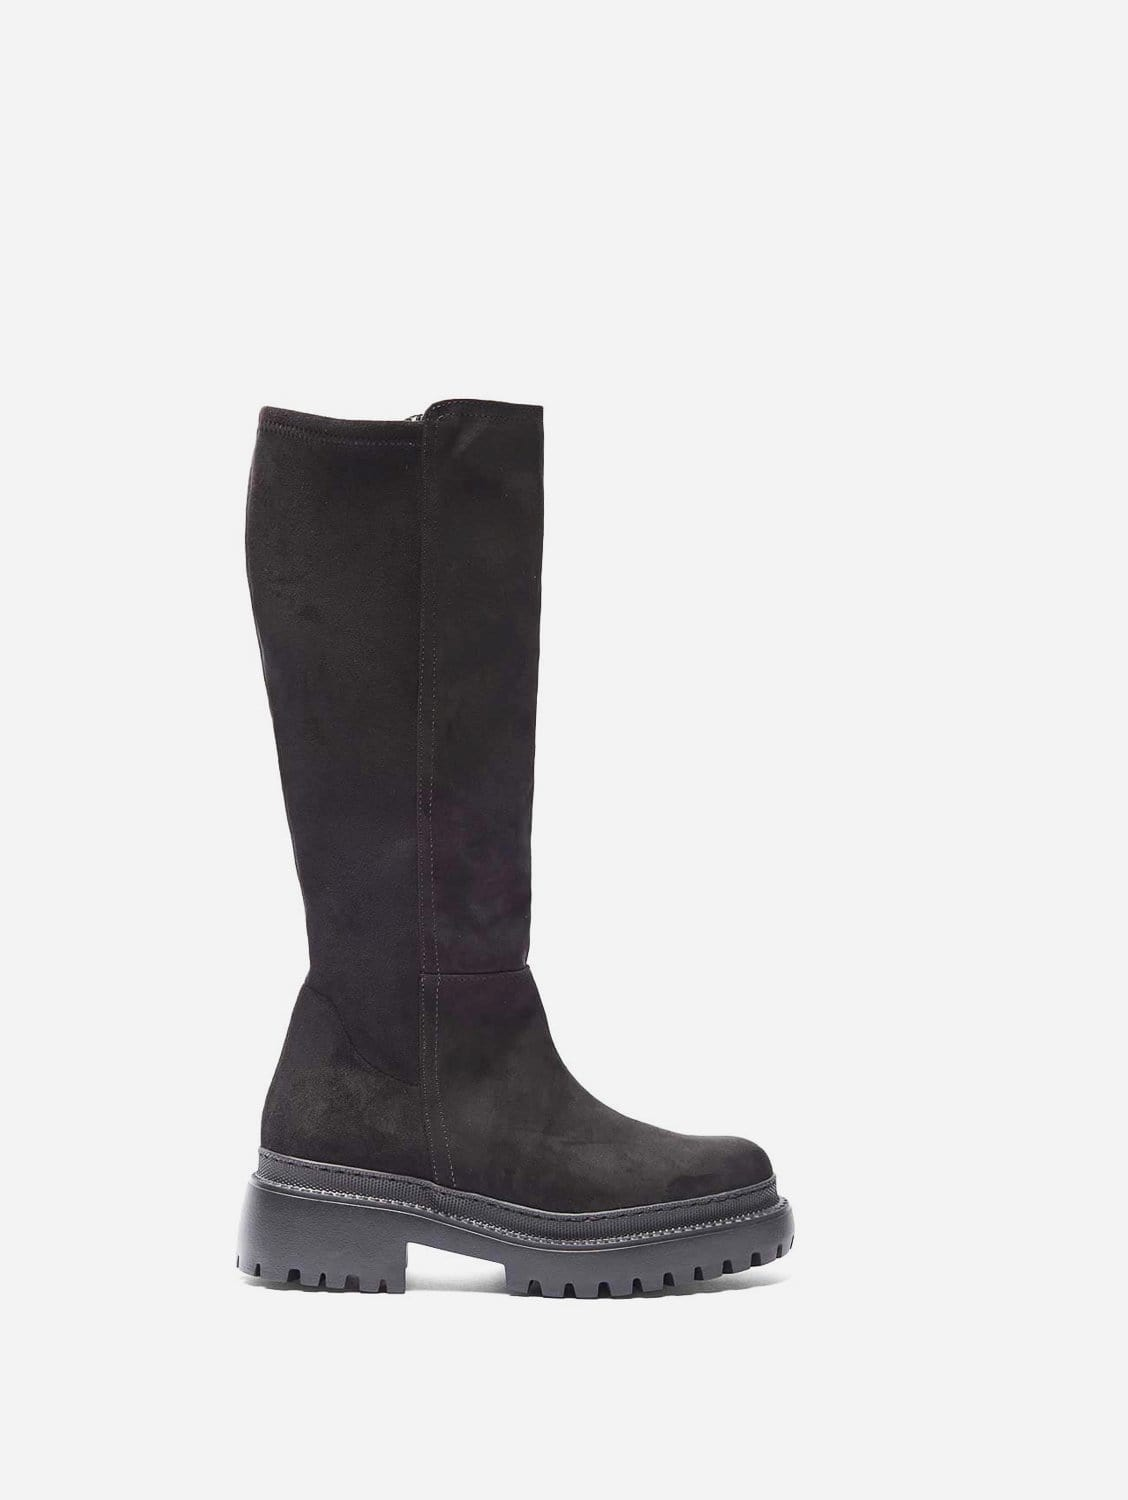 Laila Recycled Polyester Vegan Suede Winter Boots   Black